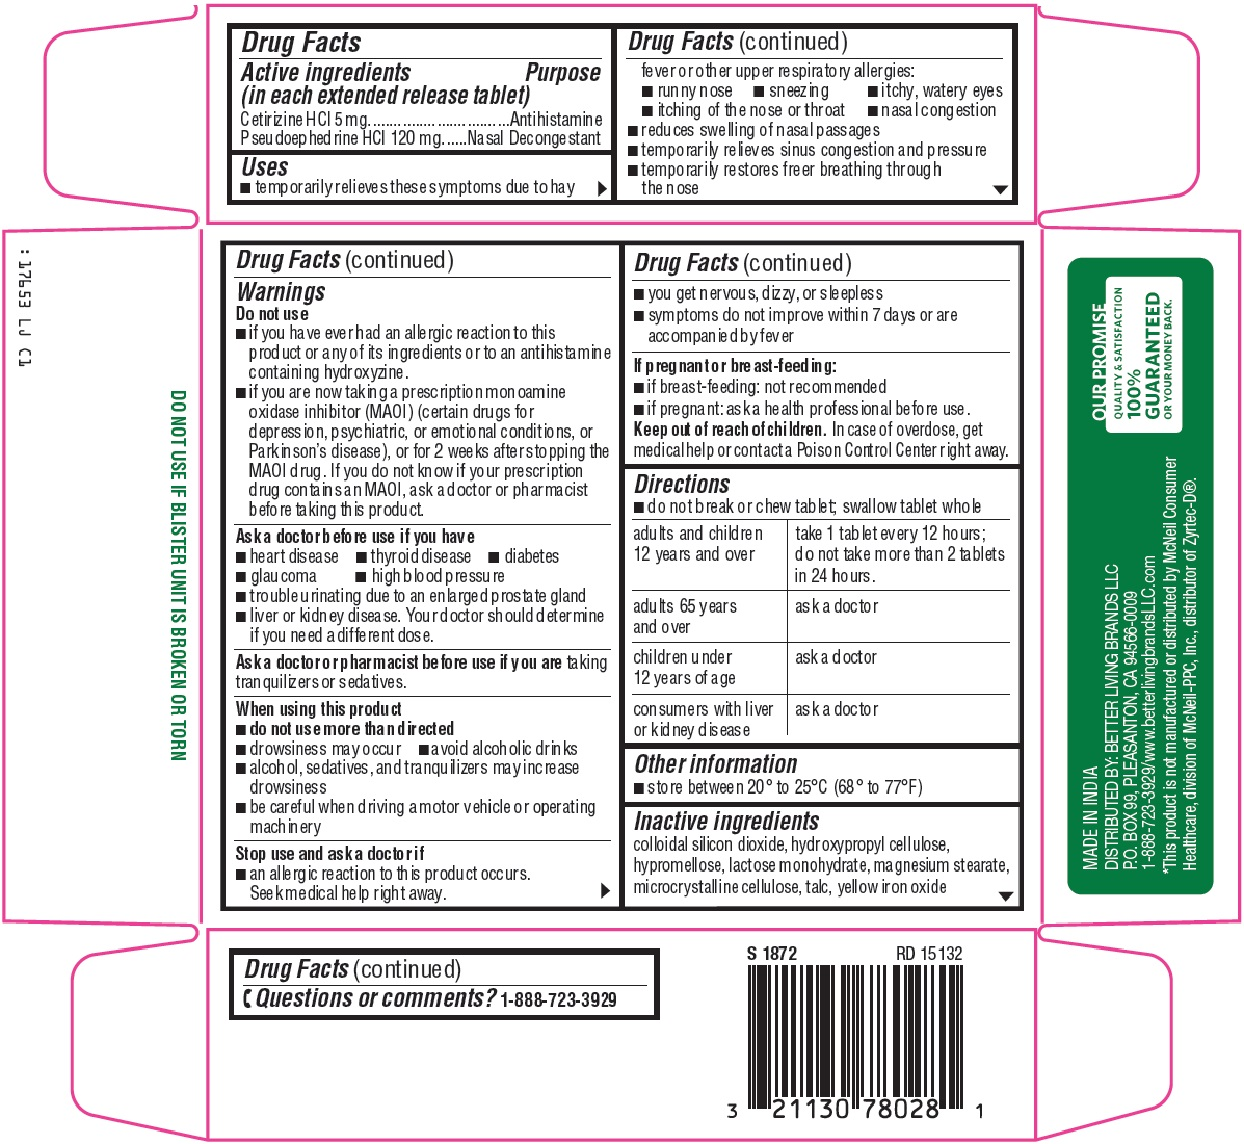 Is Signature Care Allergy Relief D   Cetirizine Hcl, Pseudoephedrine Hcl Tablet, Extended Release safe while breastfeeding